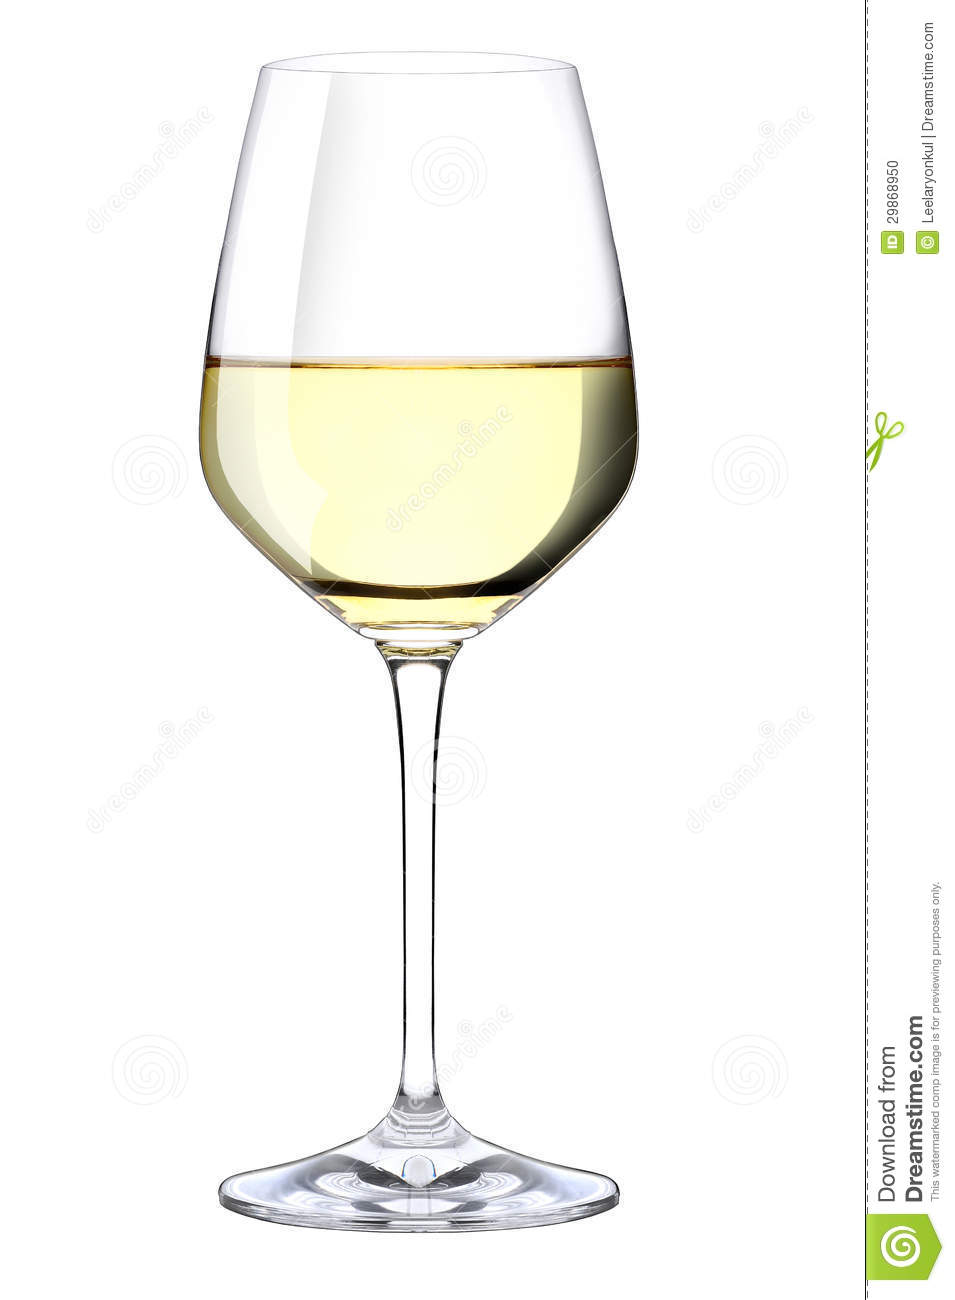 Glas Vin A Glass Of White Wine Stock Photo. Image Of Elegance